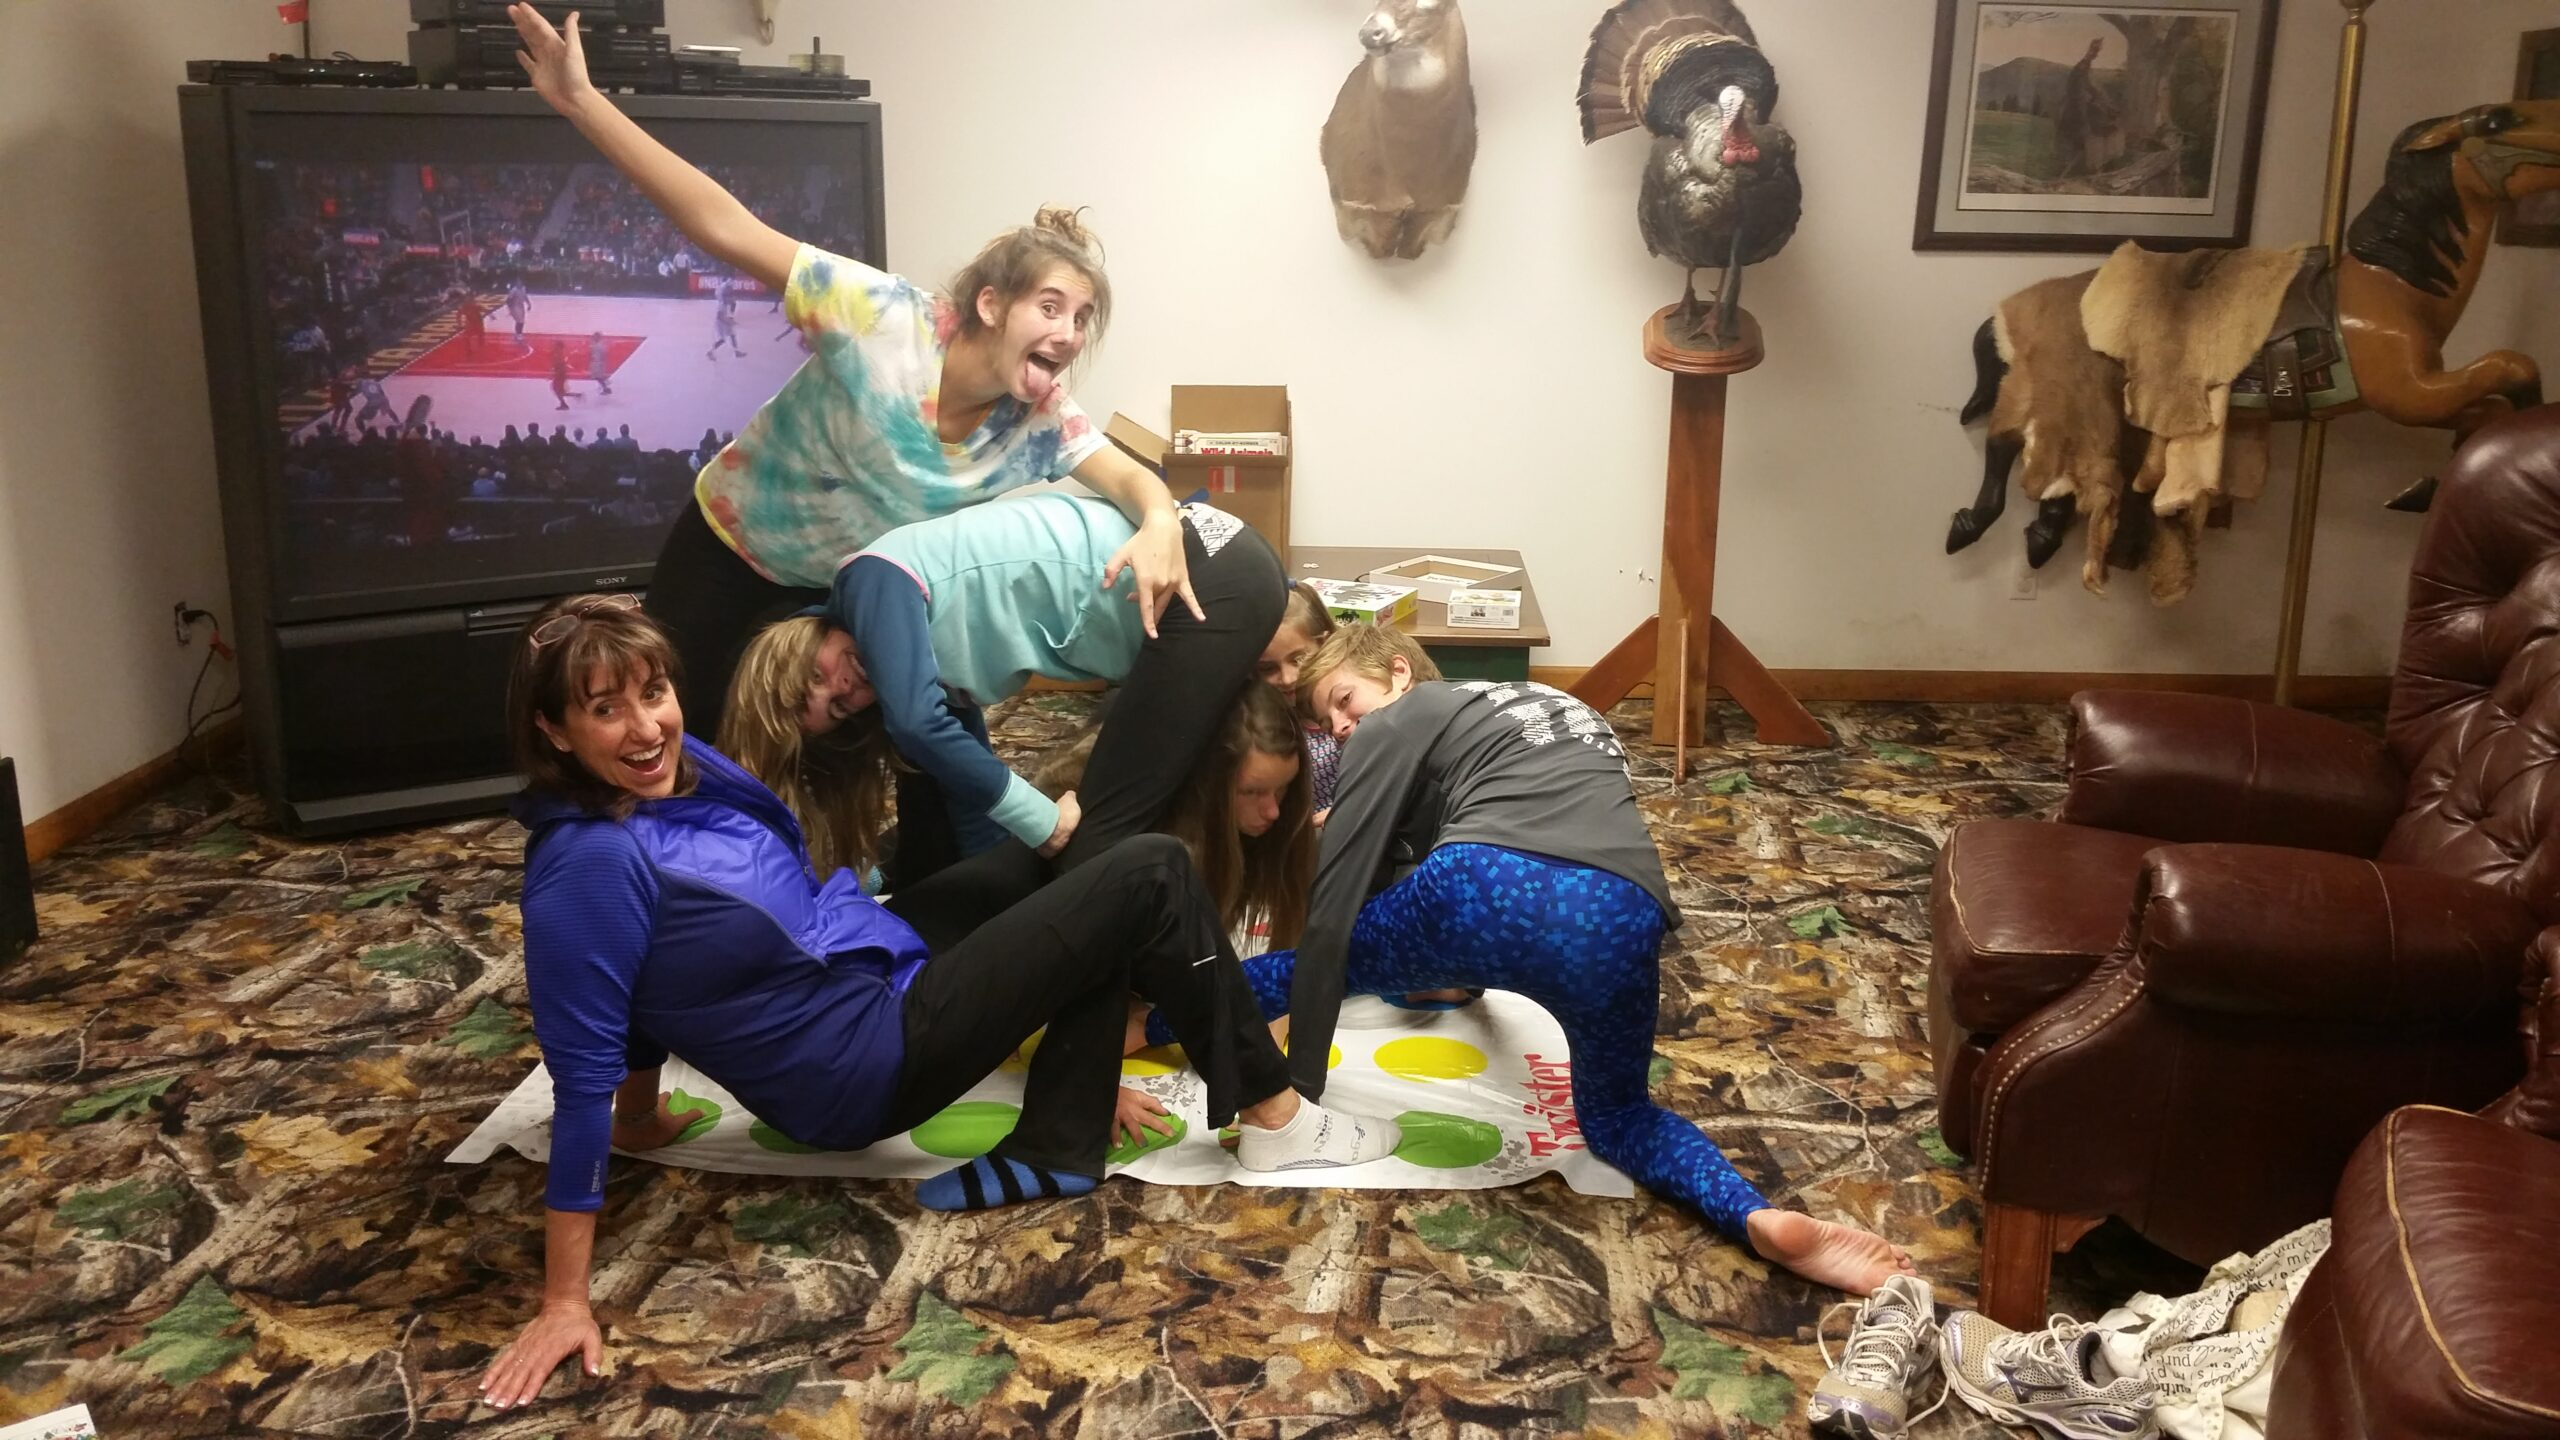 The game Twister for a holiday story, The Best Thanksgiving Ever!